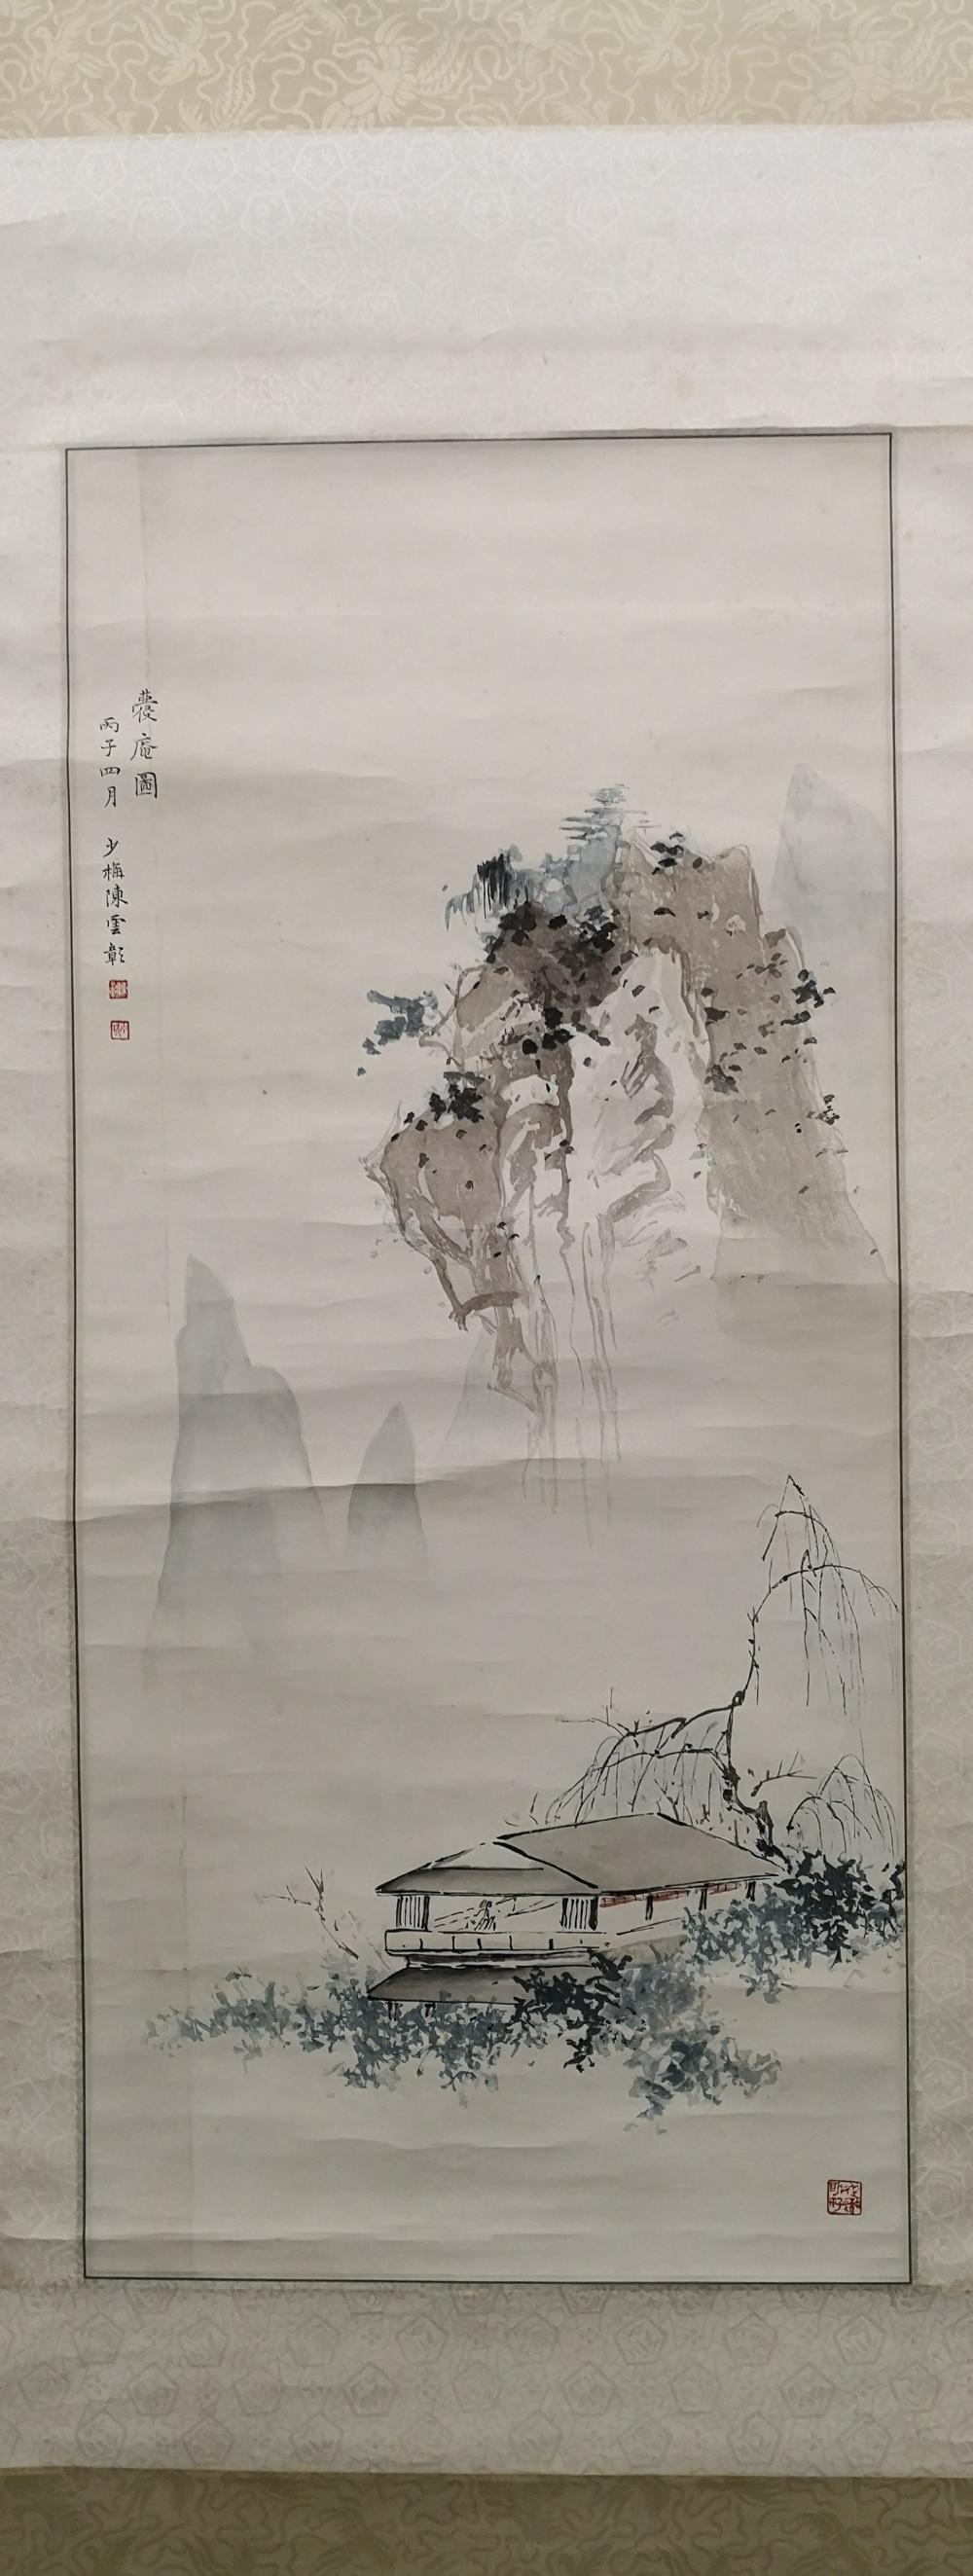 A CHINESE PAINTING BY CHEN SHAOMEI